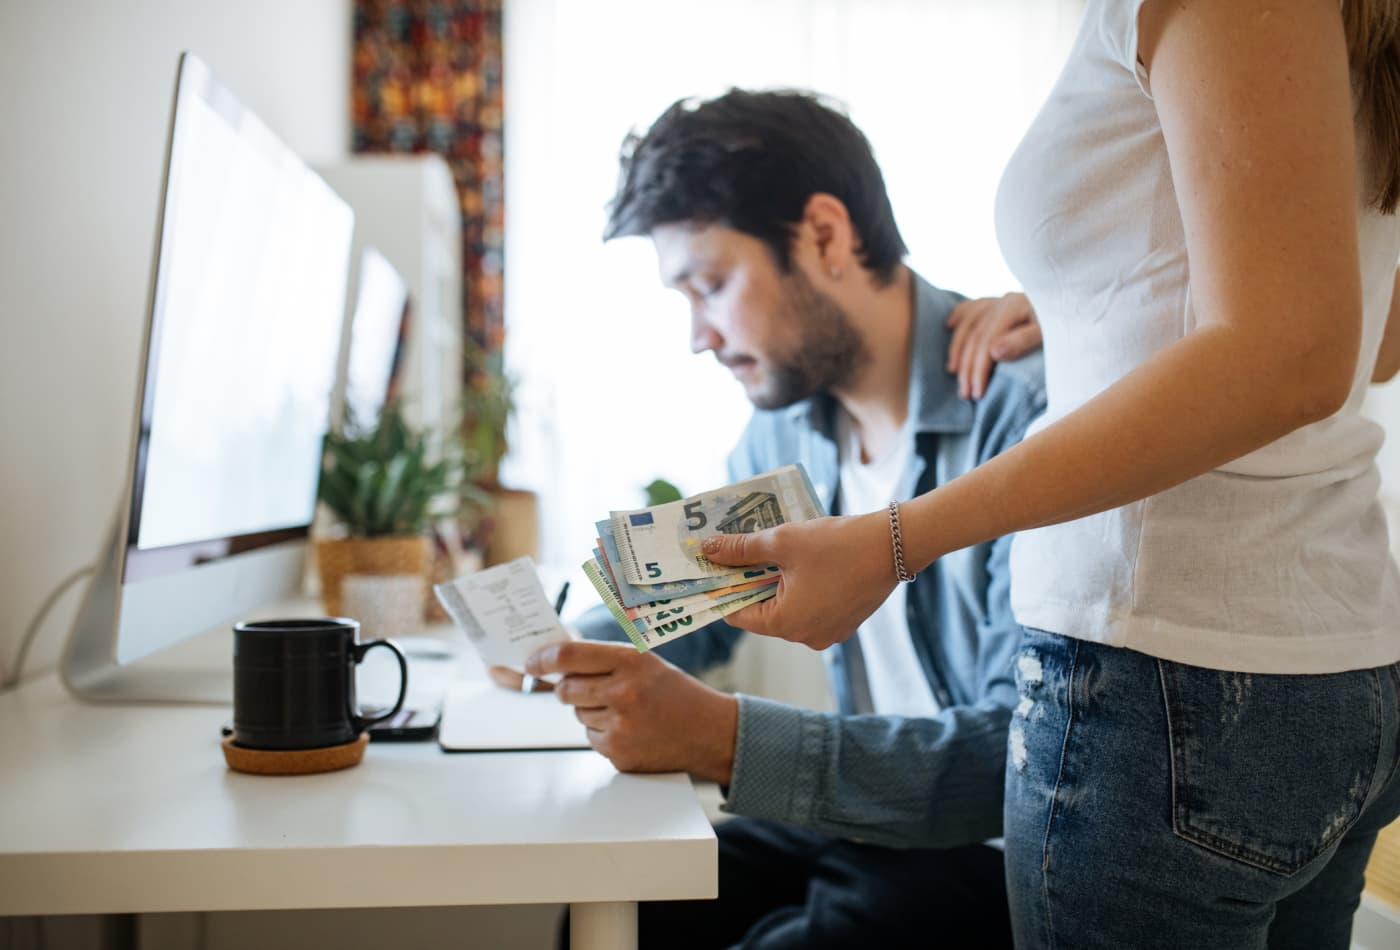 Credit score or income: Which one matters more when applying for a credit card? A FICO expert answers